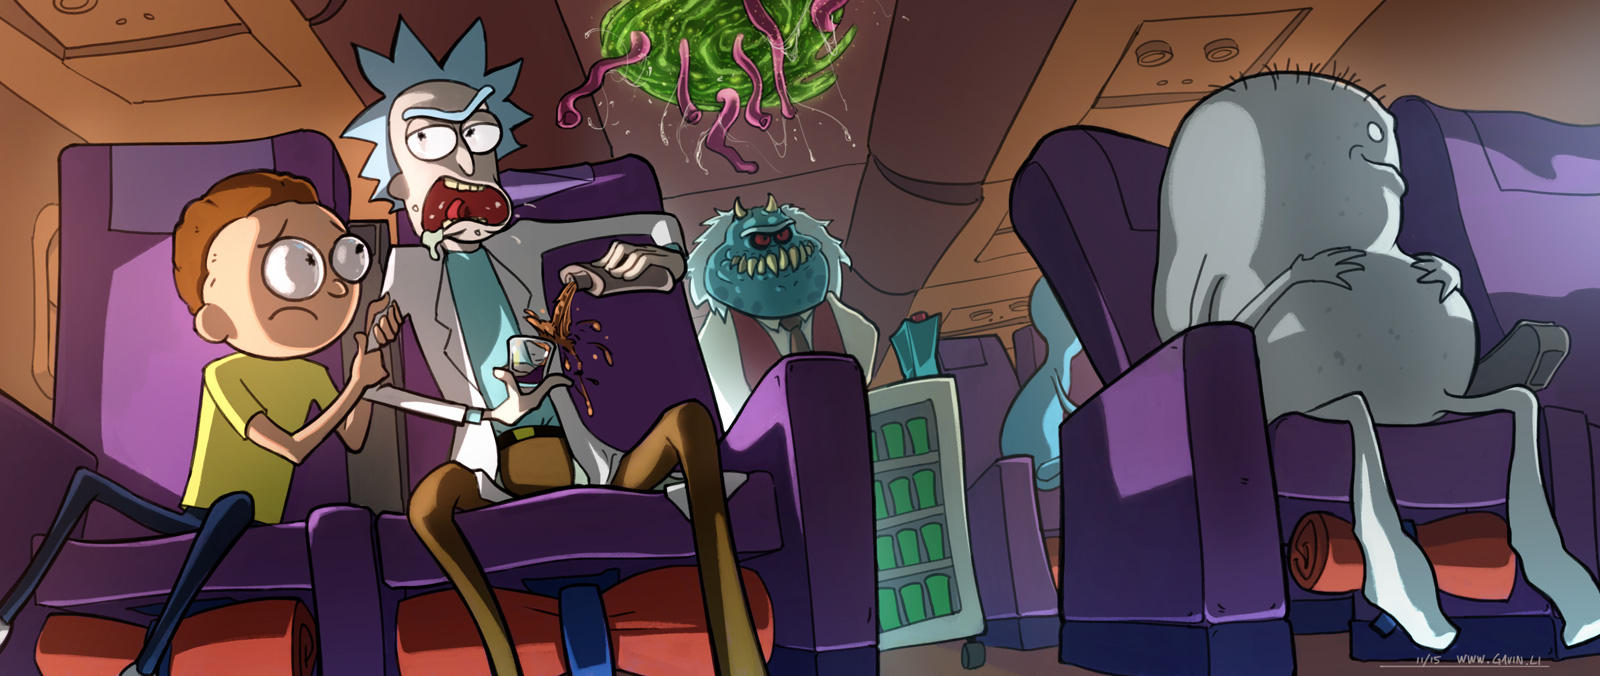 Rick and Morty on an Airplane by gavinli